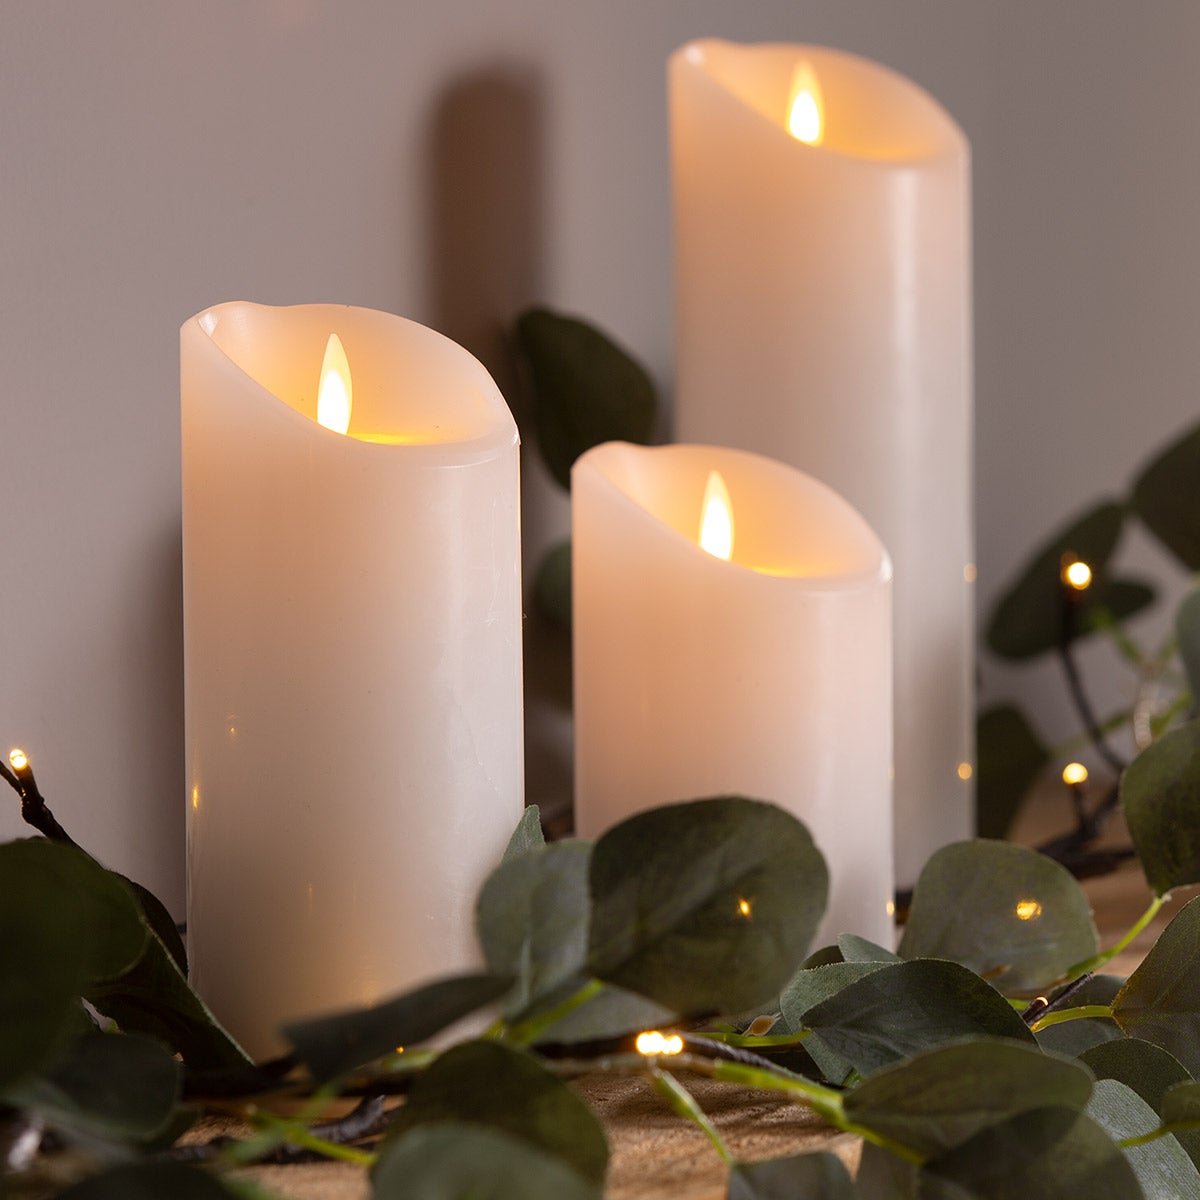 Cream LED Pillar Candle with Flicker Flame and Auto-Timer